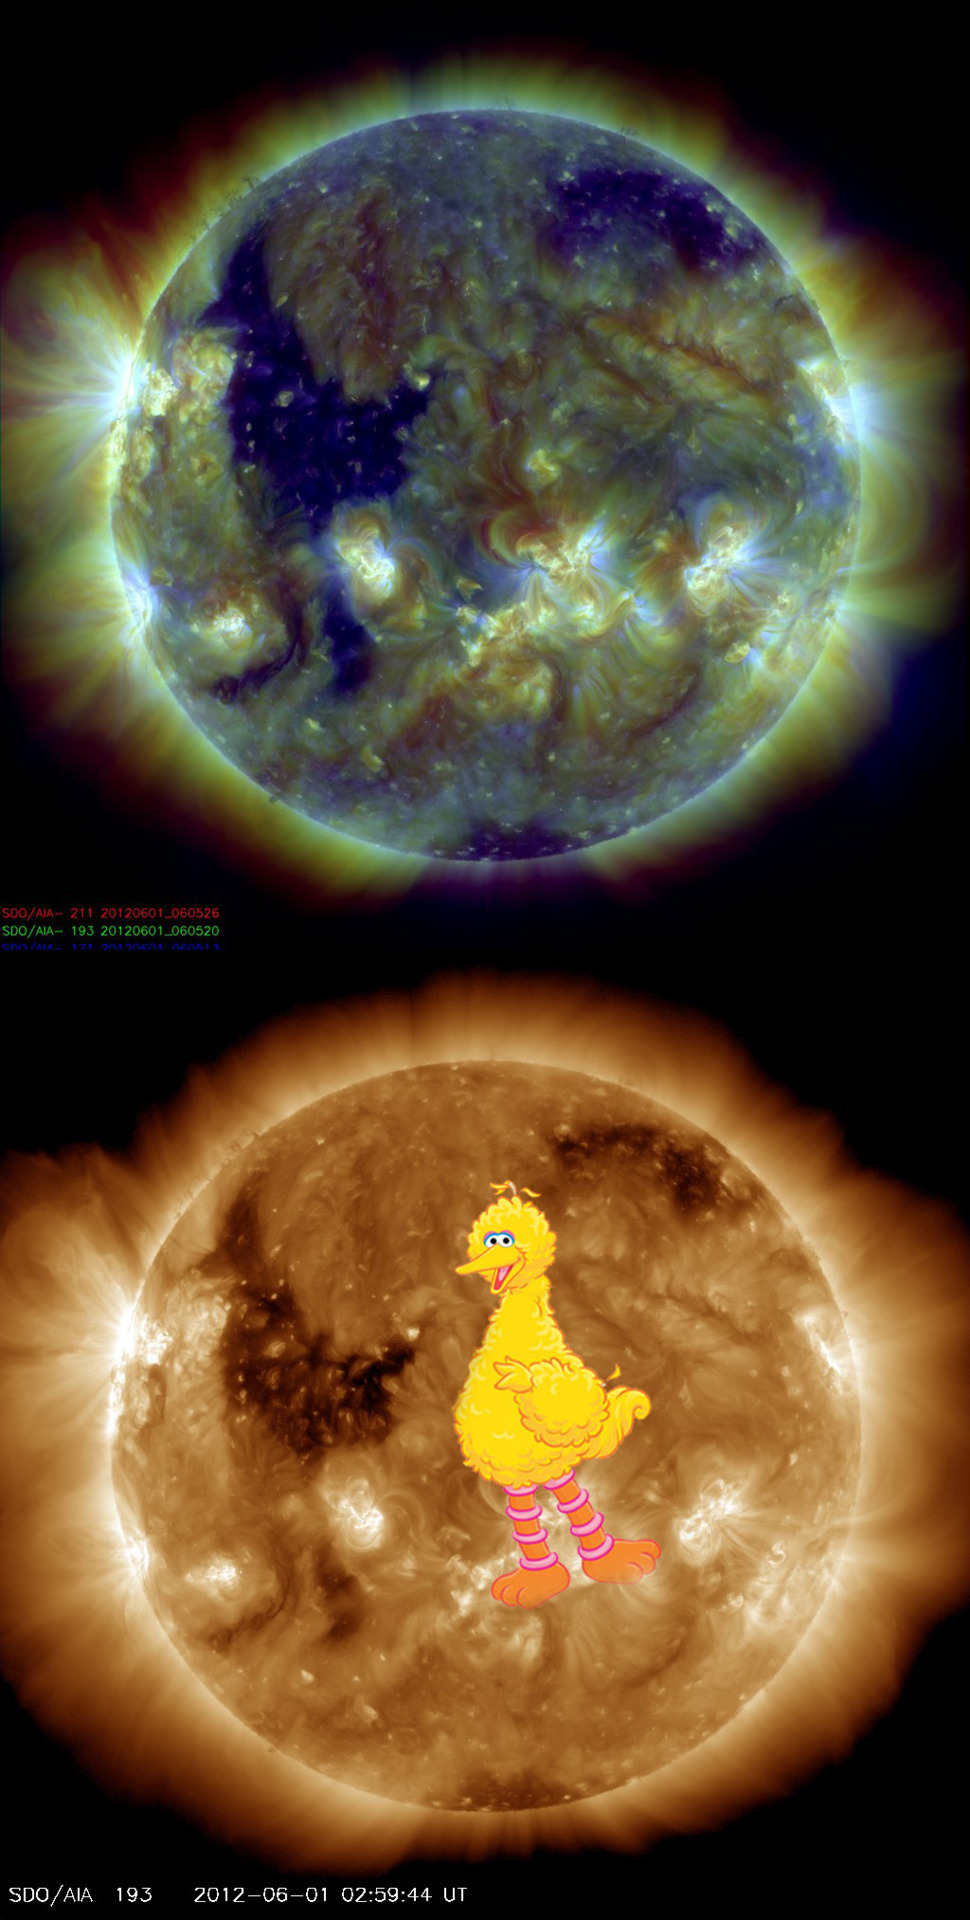 "Sesame Street's 'Big Bird' Spotted on Sun's Surface in Spacecraft Photo ""A new photo from a NASA sun-watching spacecraft highlights a huge solar feature that looks a lot like the beloved Big Bird from the children's television show ""Sesame Street."" The image, snapped today June 1 by NASA's Solar Dynamics Observatory (SDO) probe, actually shows a so-called coronal hole — an area where the sun's corona, or outer atmosphere, is dark. But the resemblance to Big Bird, or one of his feathered kin anyway, is uncanny."""